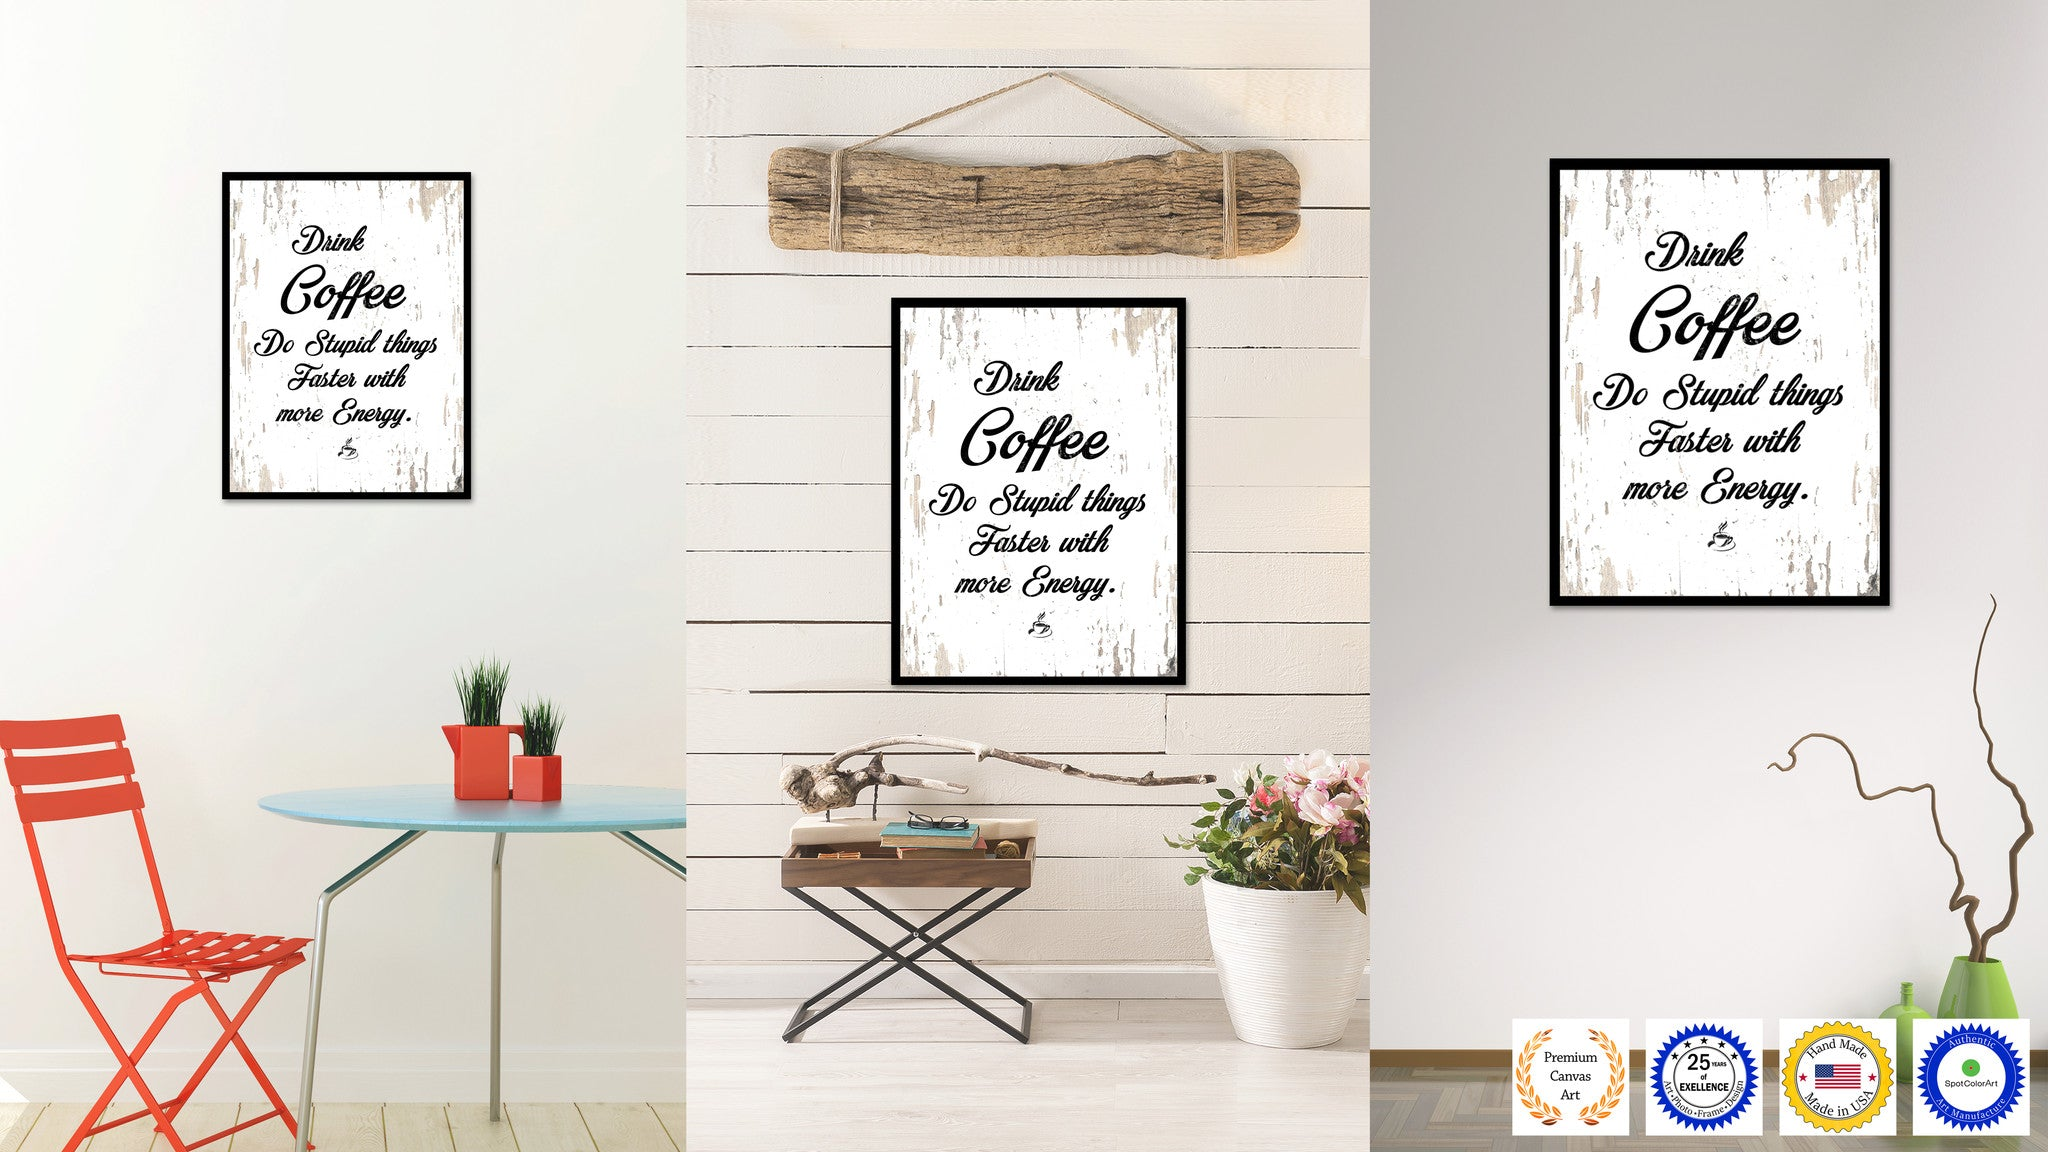 Drink Coffee Do Stupid Things Faster With More Energy Quote Saying Canvas Print with Picture Frame